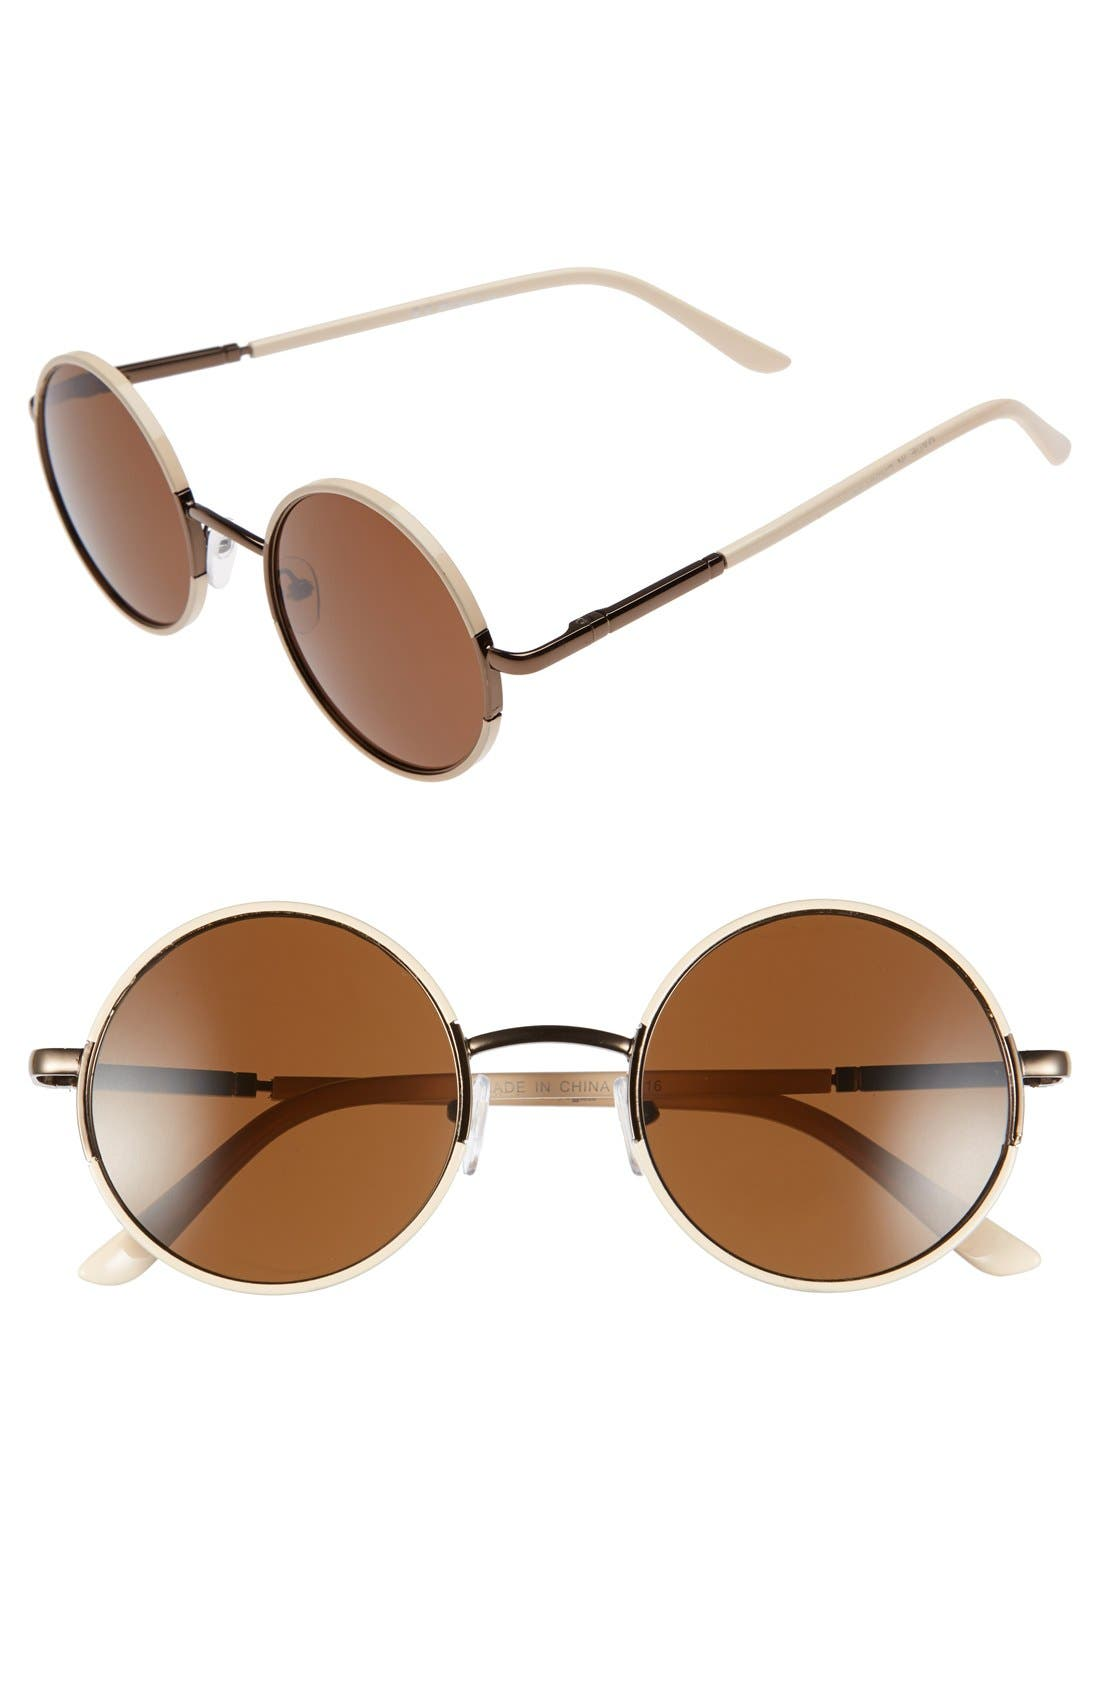 Main Image - A.J. Morgan 'Soul Child' 49mm Metal Sunglasses